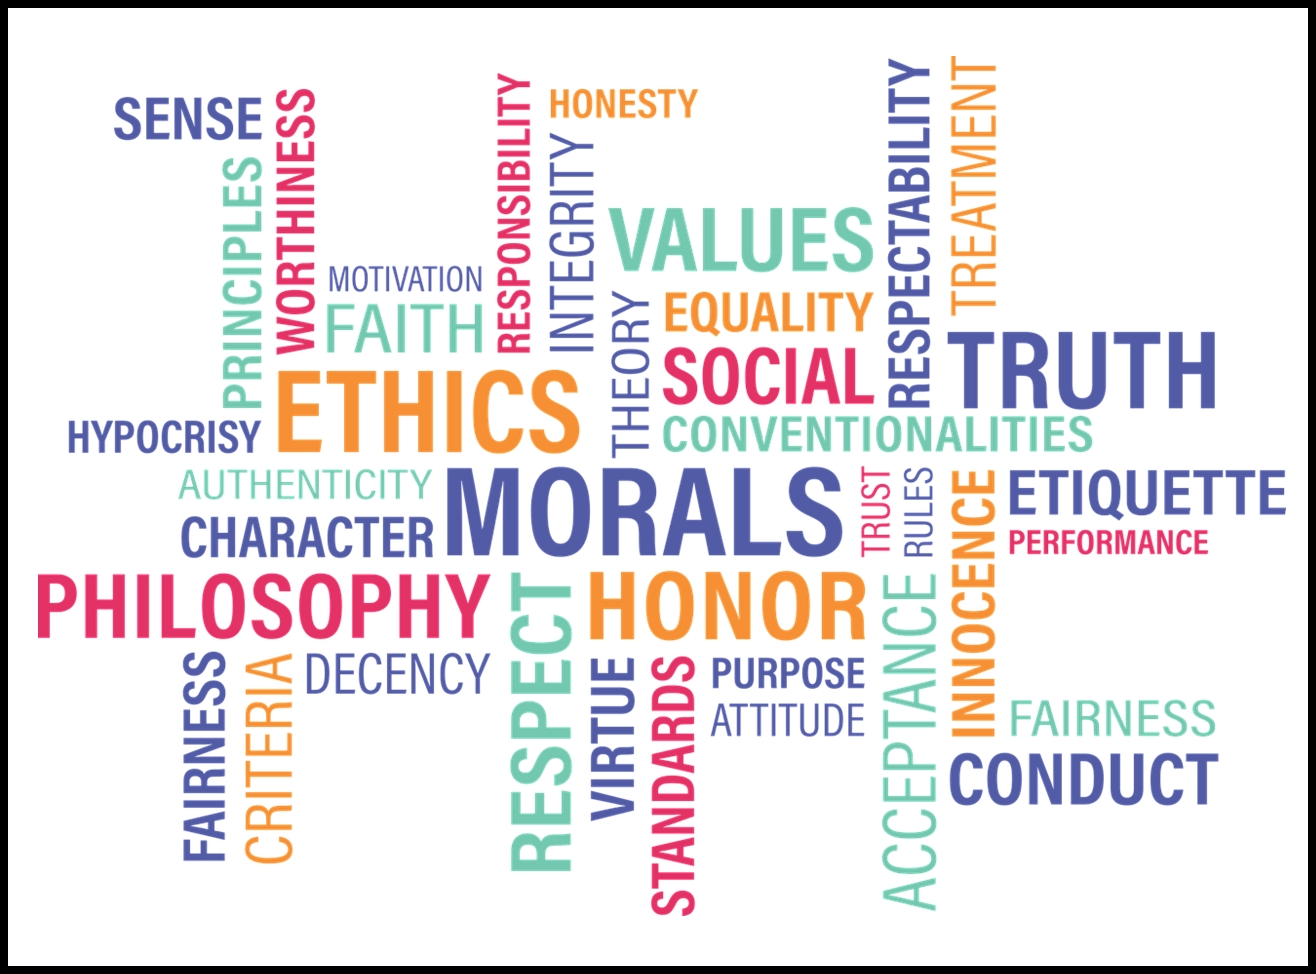 Word cloud that includes ethics, morals, values, honor, respect, truth and approx 20 other words